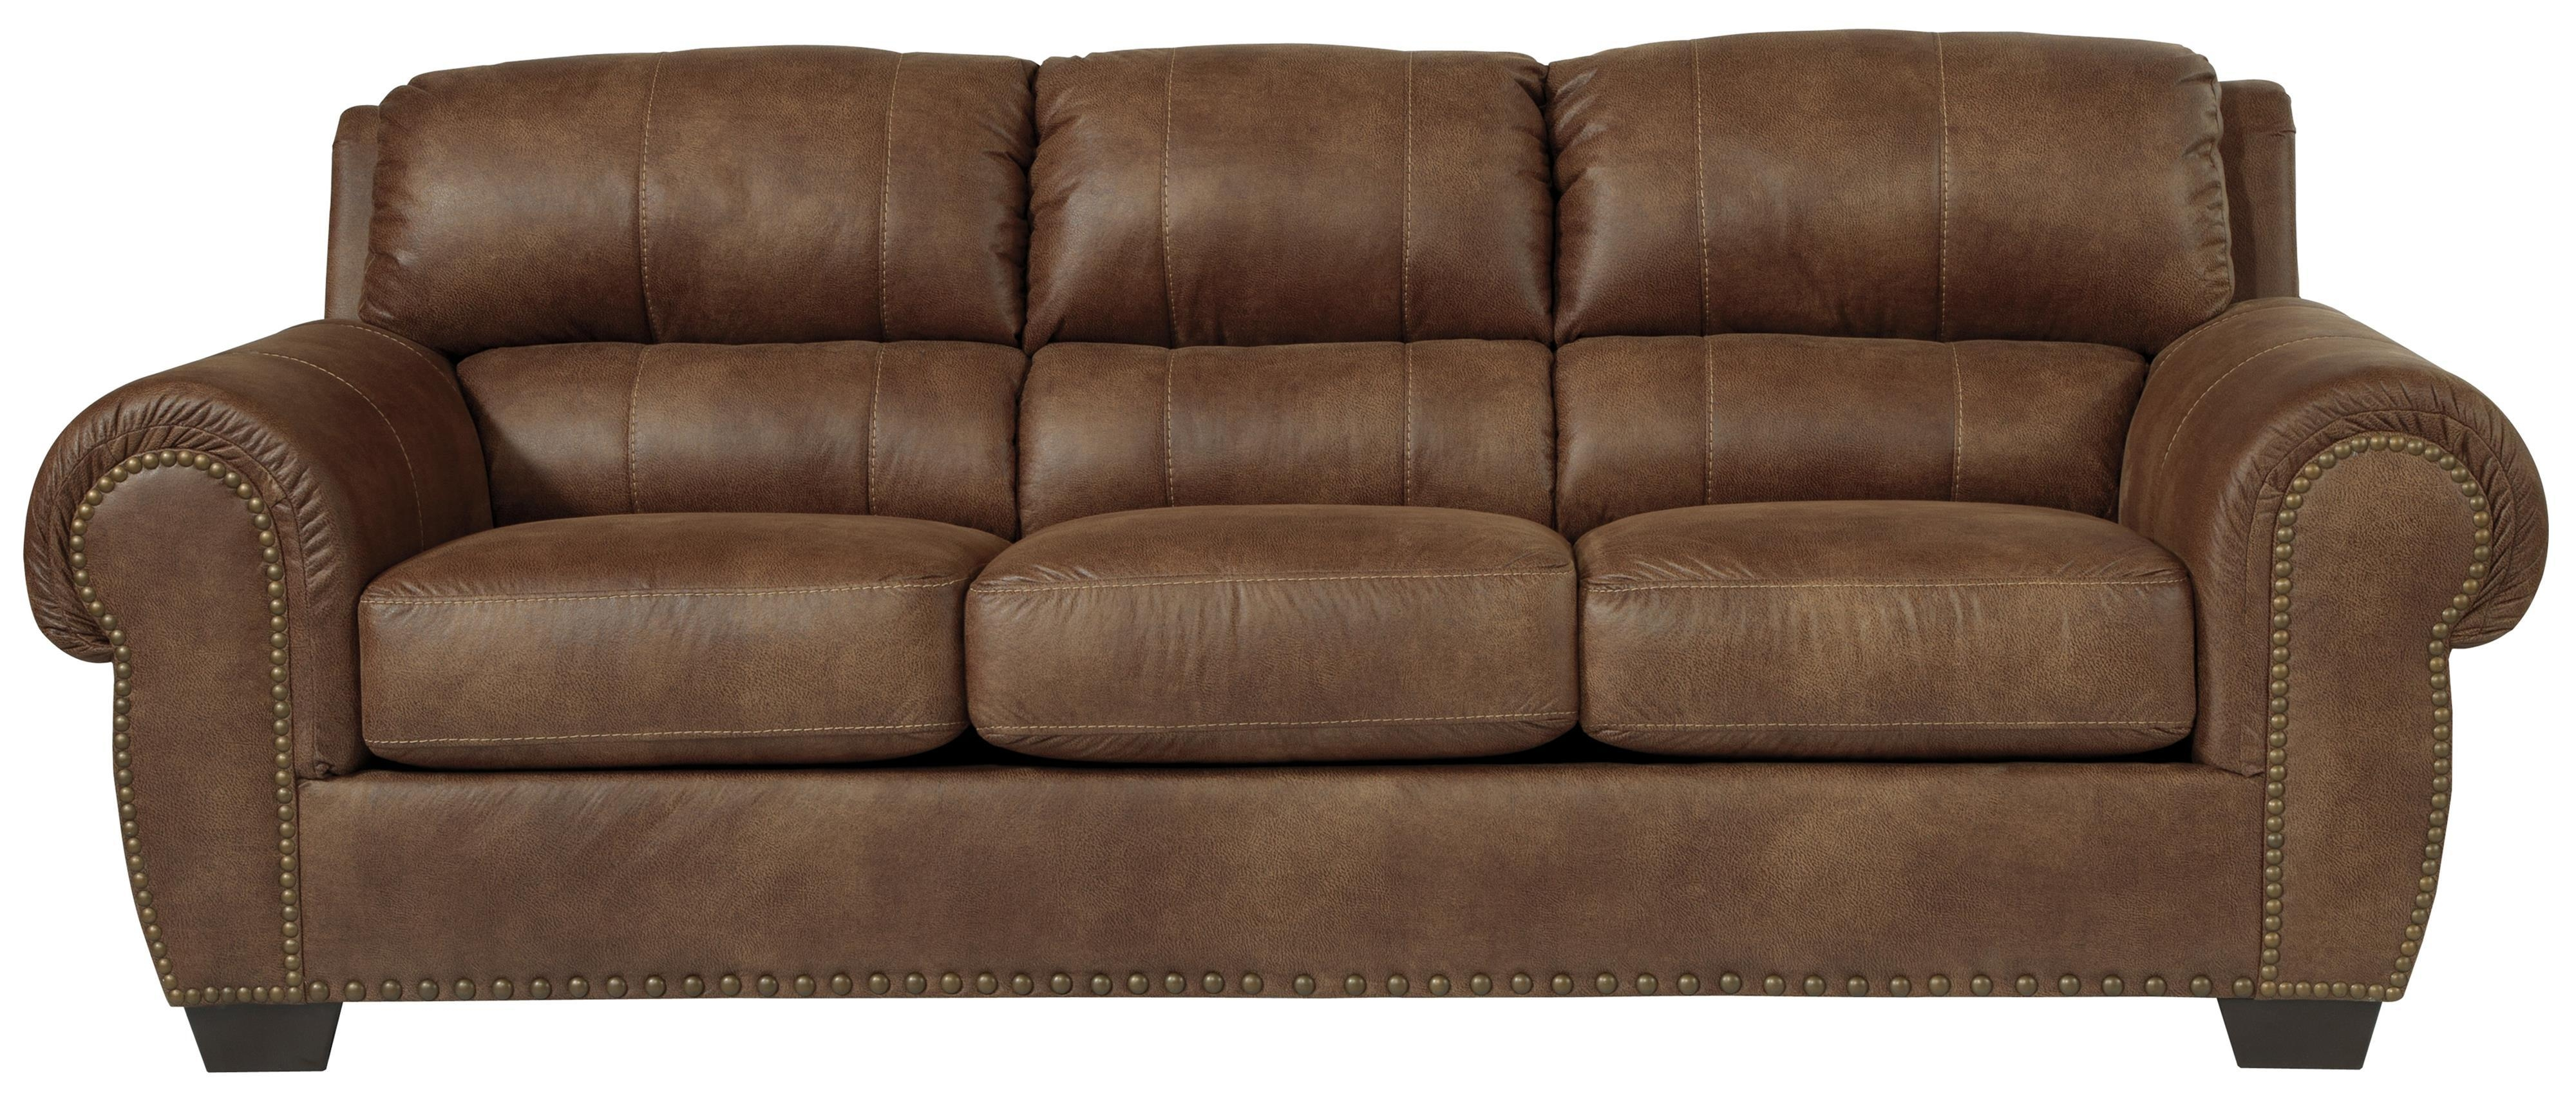 Transitional Faux Leather Sofa With Rolled Arms & Nailhead Trim With Regard To Benchcraft Leather Sofas (View 9 of 20)